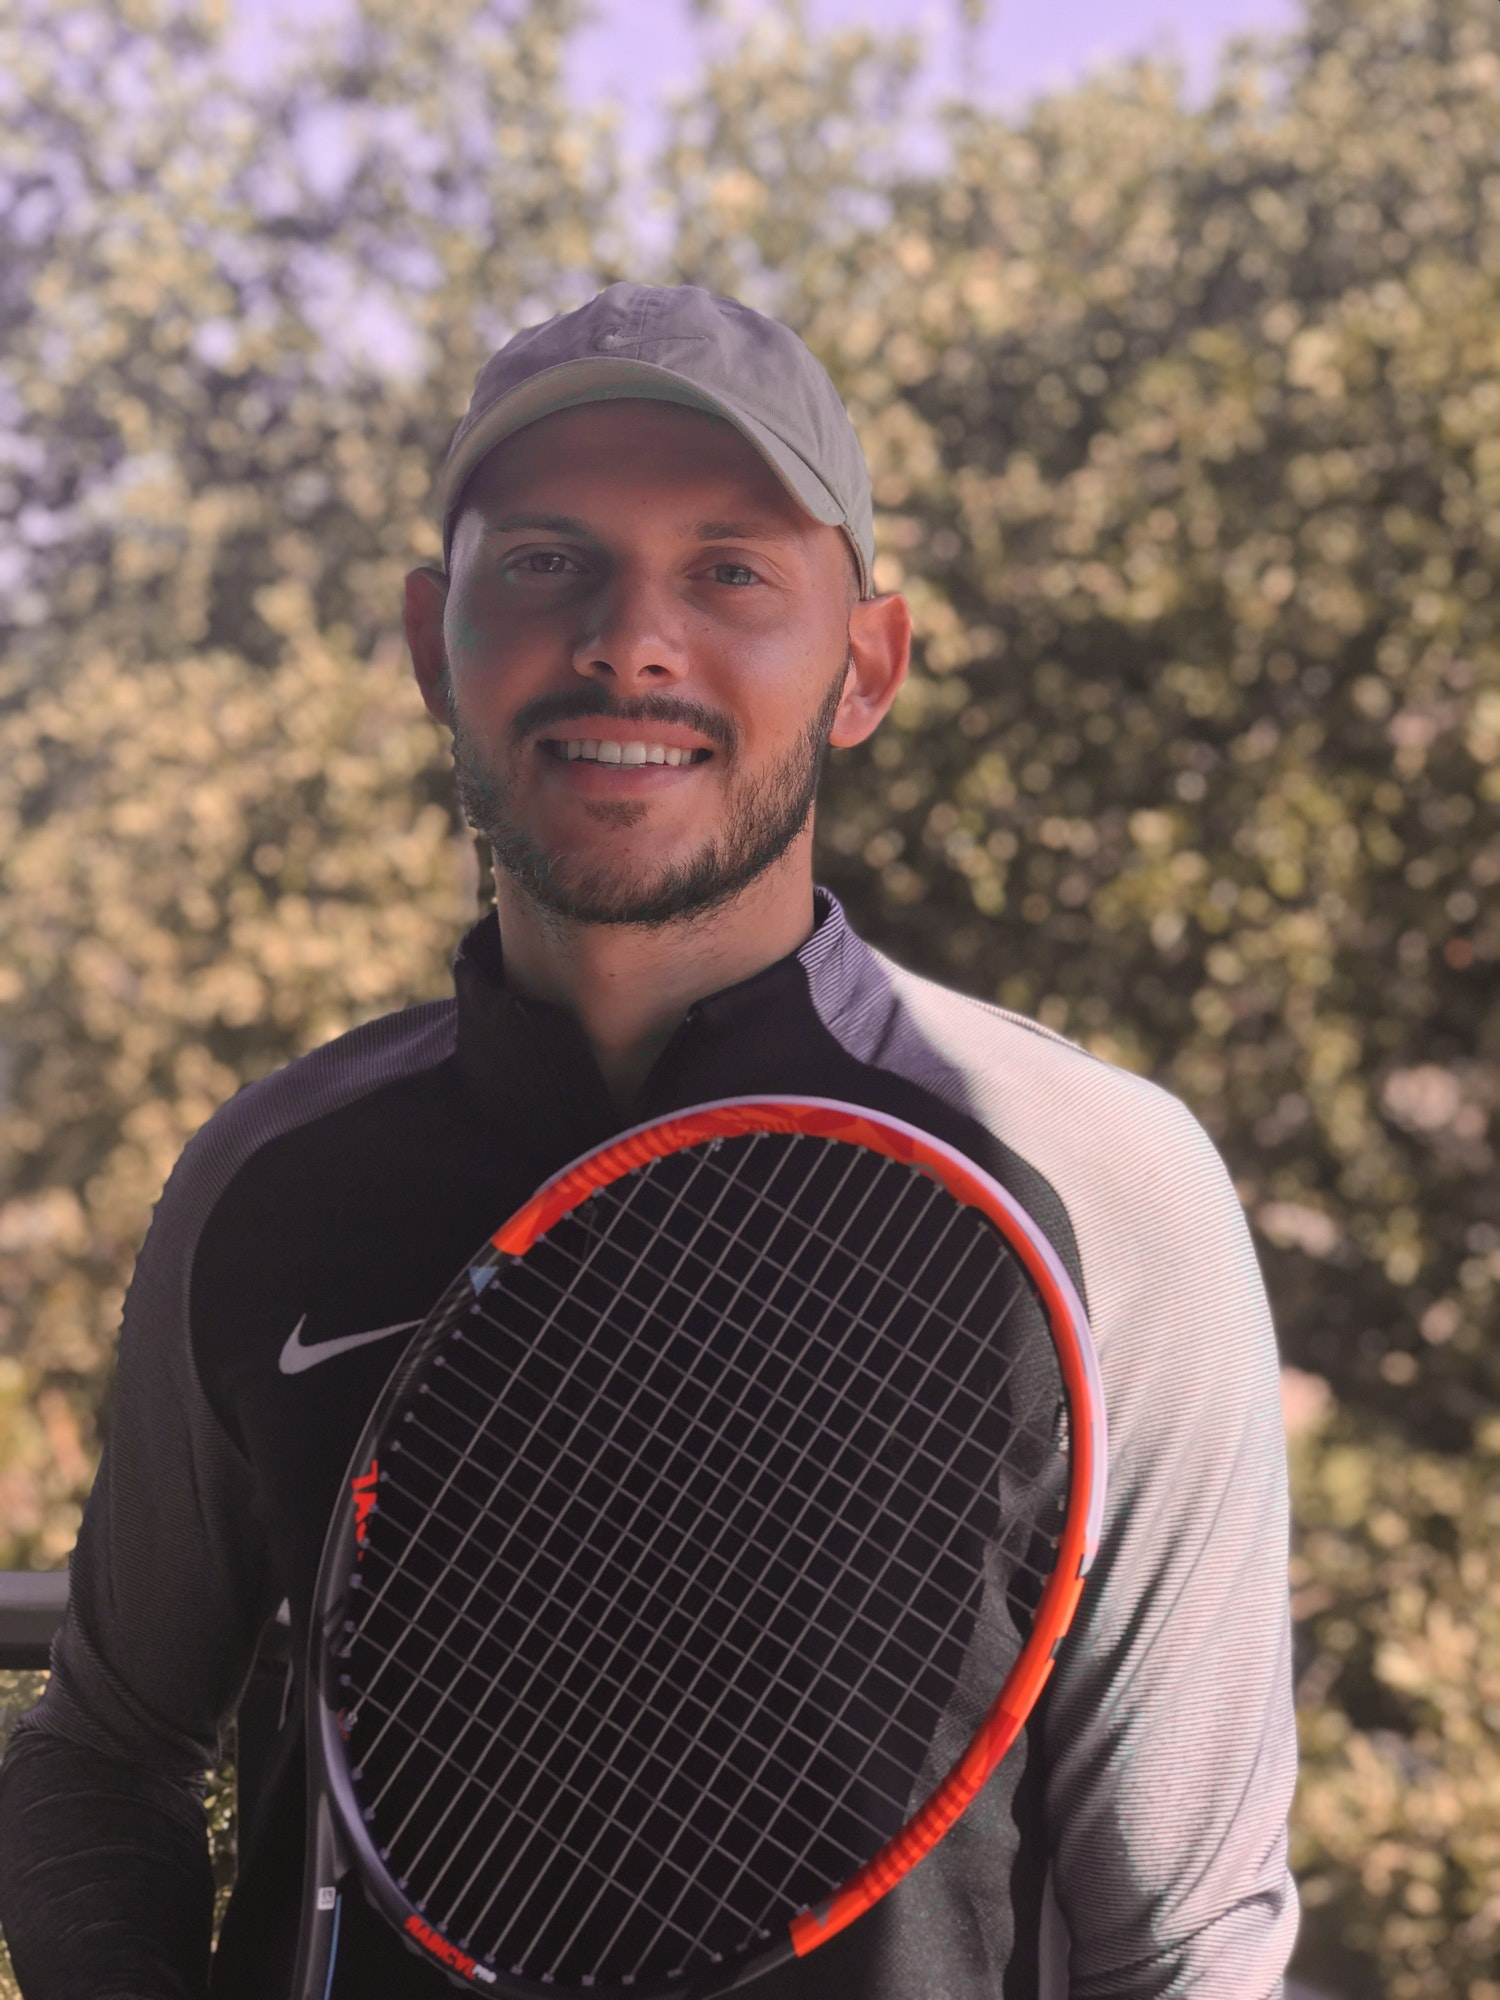 Andre G. teaches tennis lessons in Dallas, TX